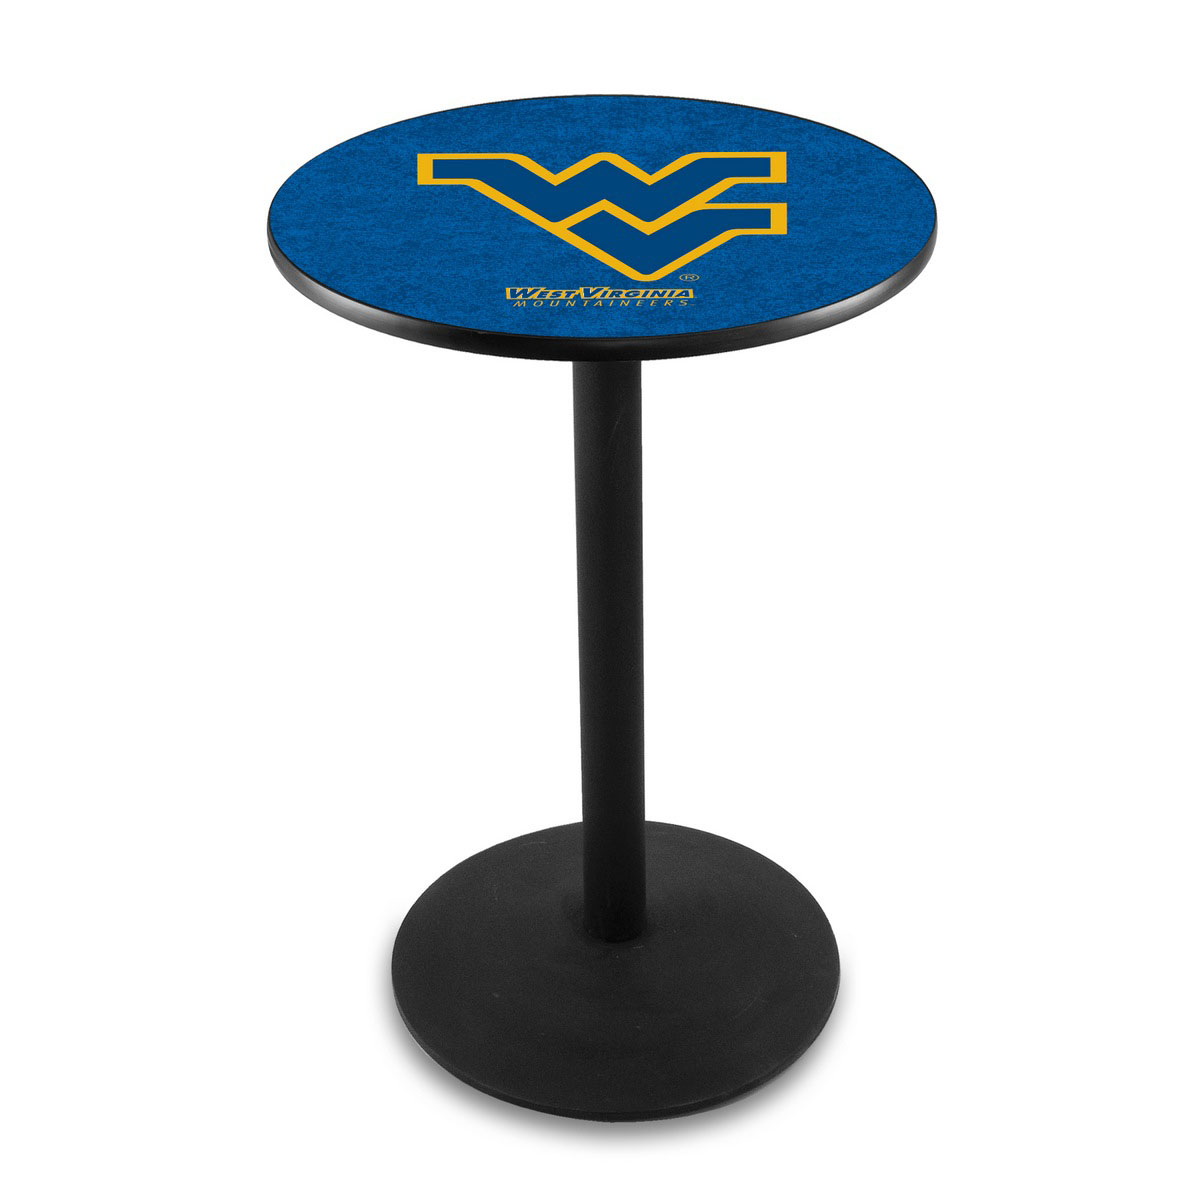 Superb-quality West Virginia University Logo Pub Bar Table Round Stand Product Photo